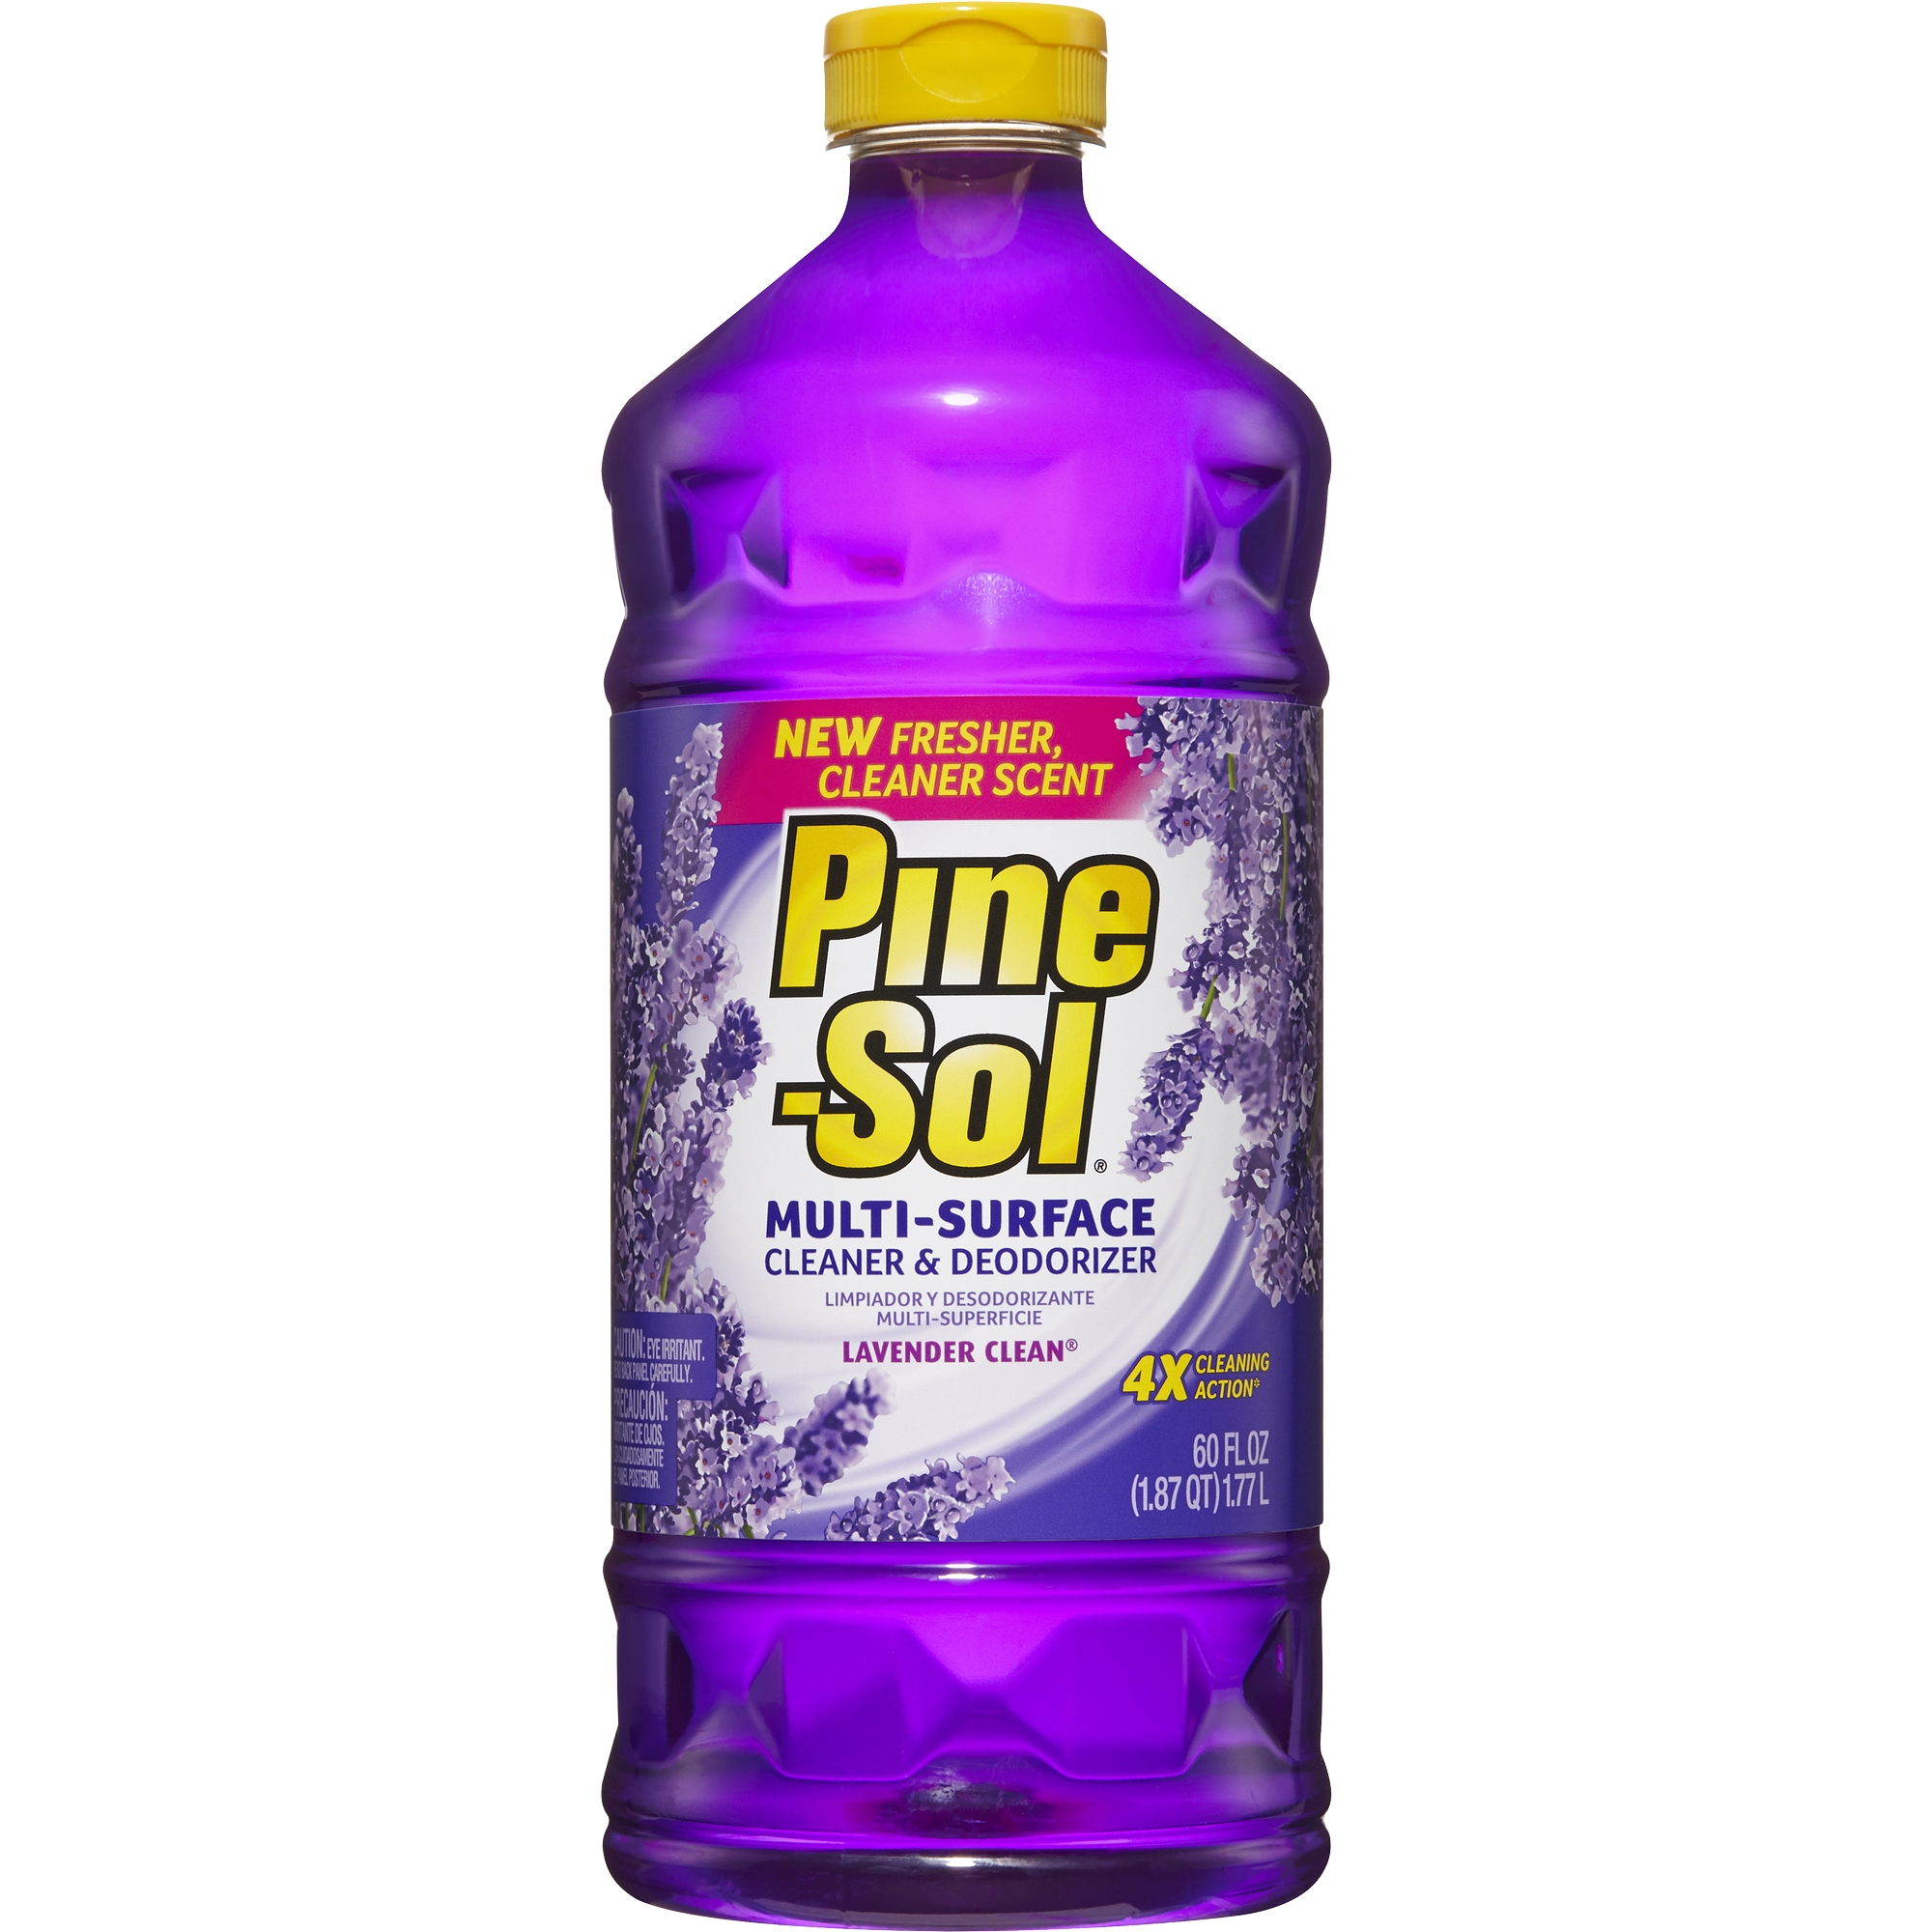 Pine-Sol Multi-Surface Cleaner, Lavender, 60 Fluid Ounce Bottle